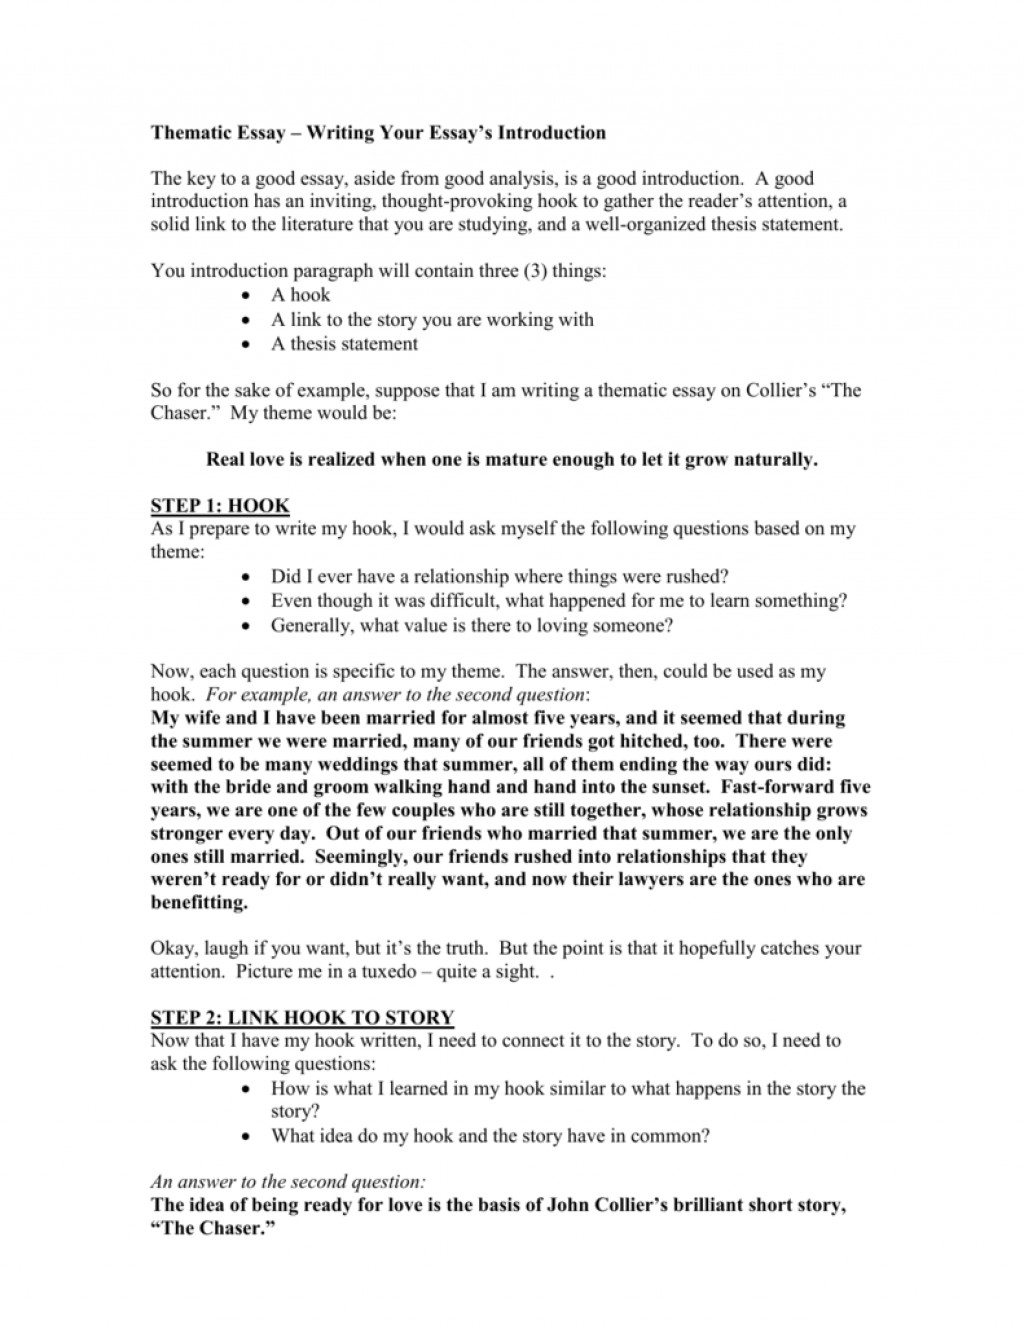 004 Essay Example 007669064 2 Fearsome Thematic Photo Examples Rubric Analysis Template Large